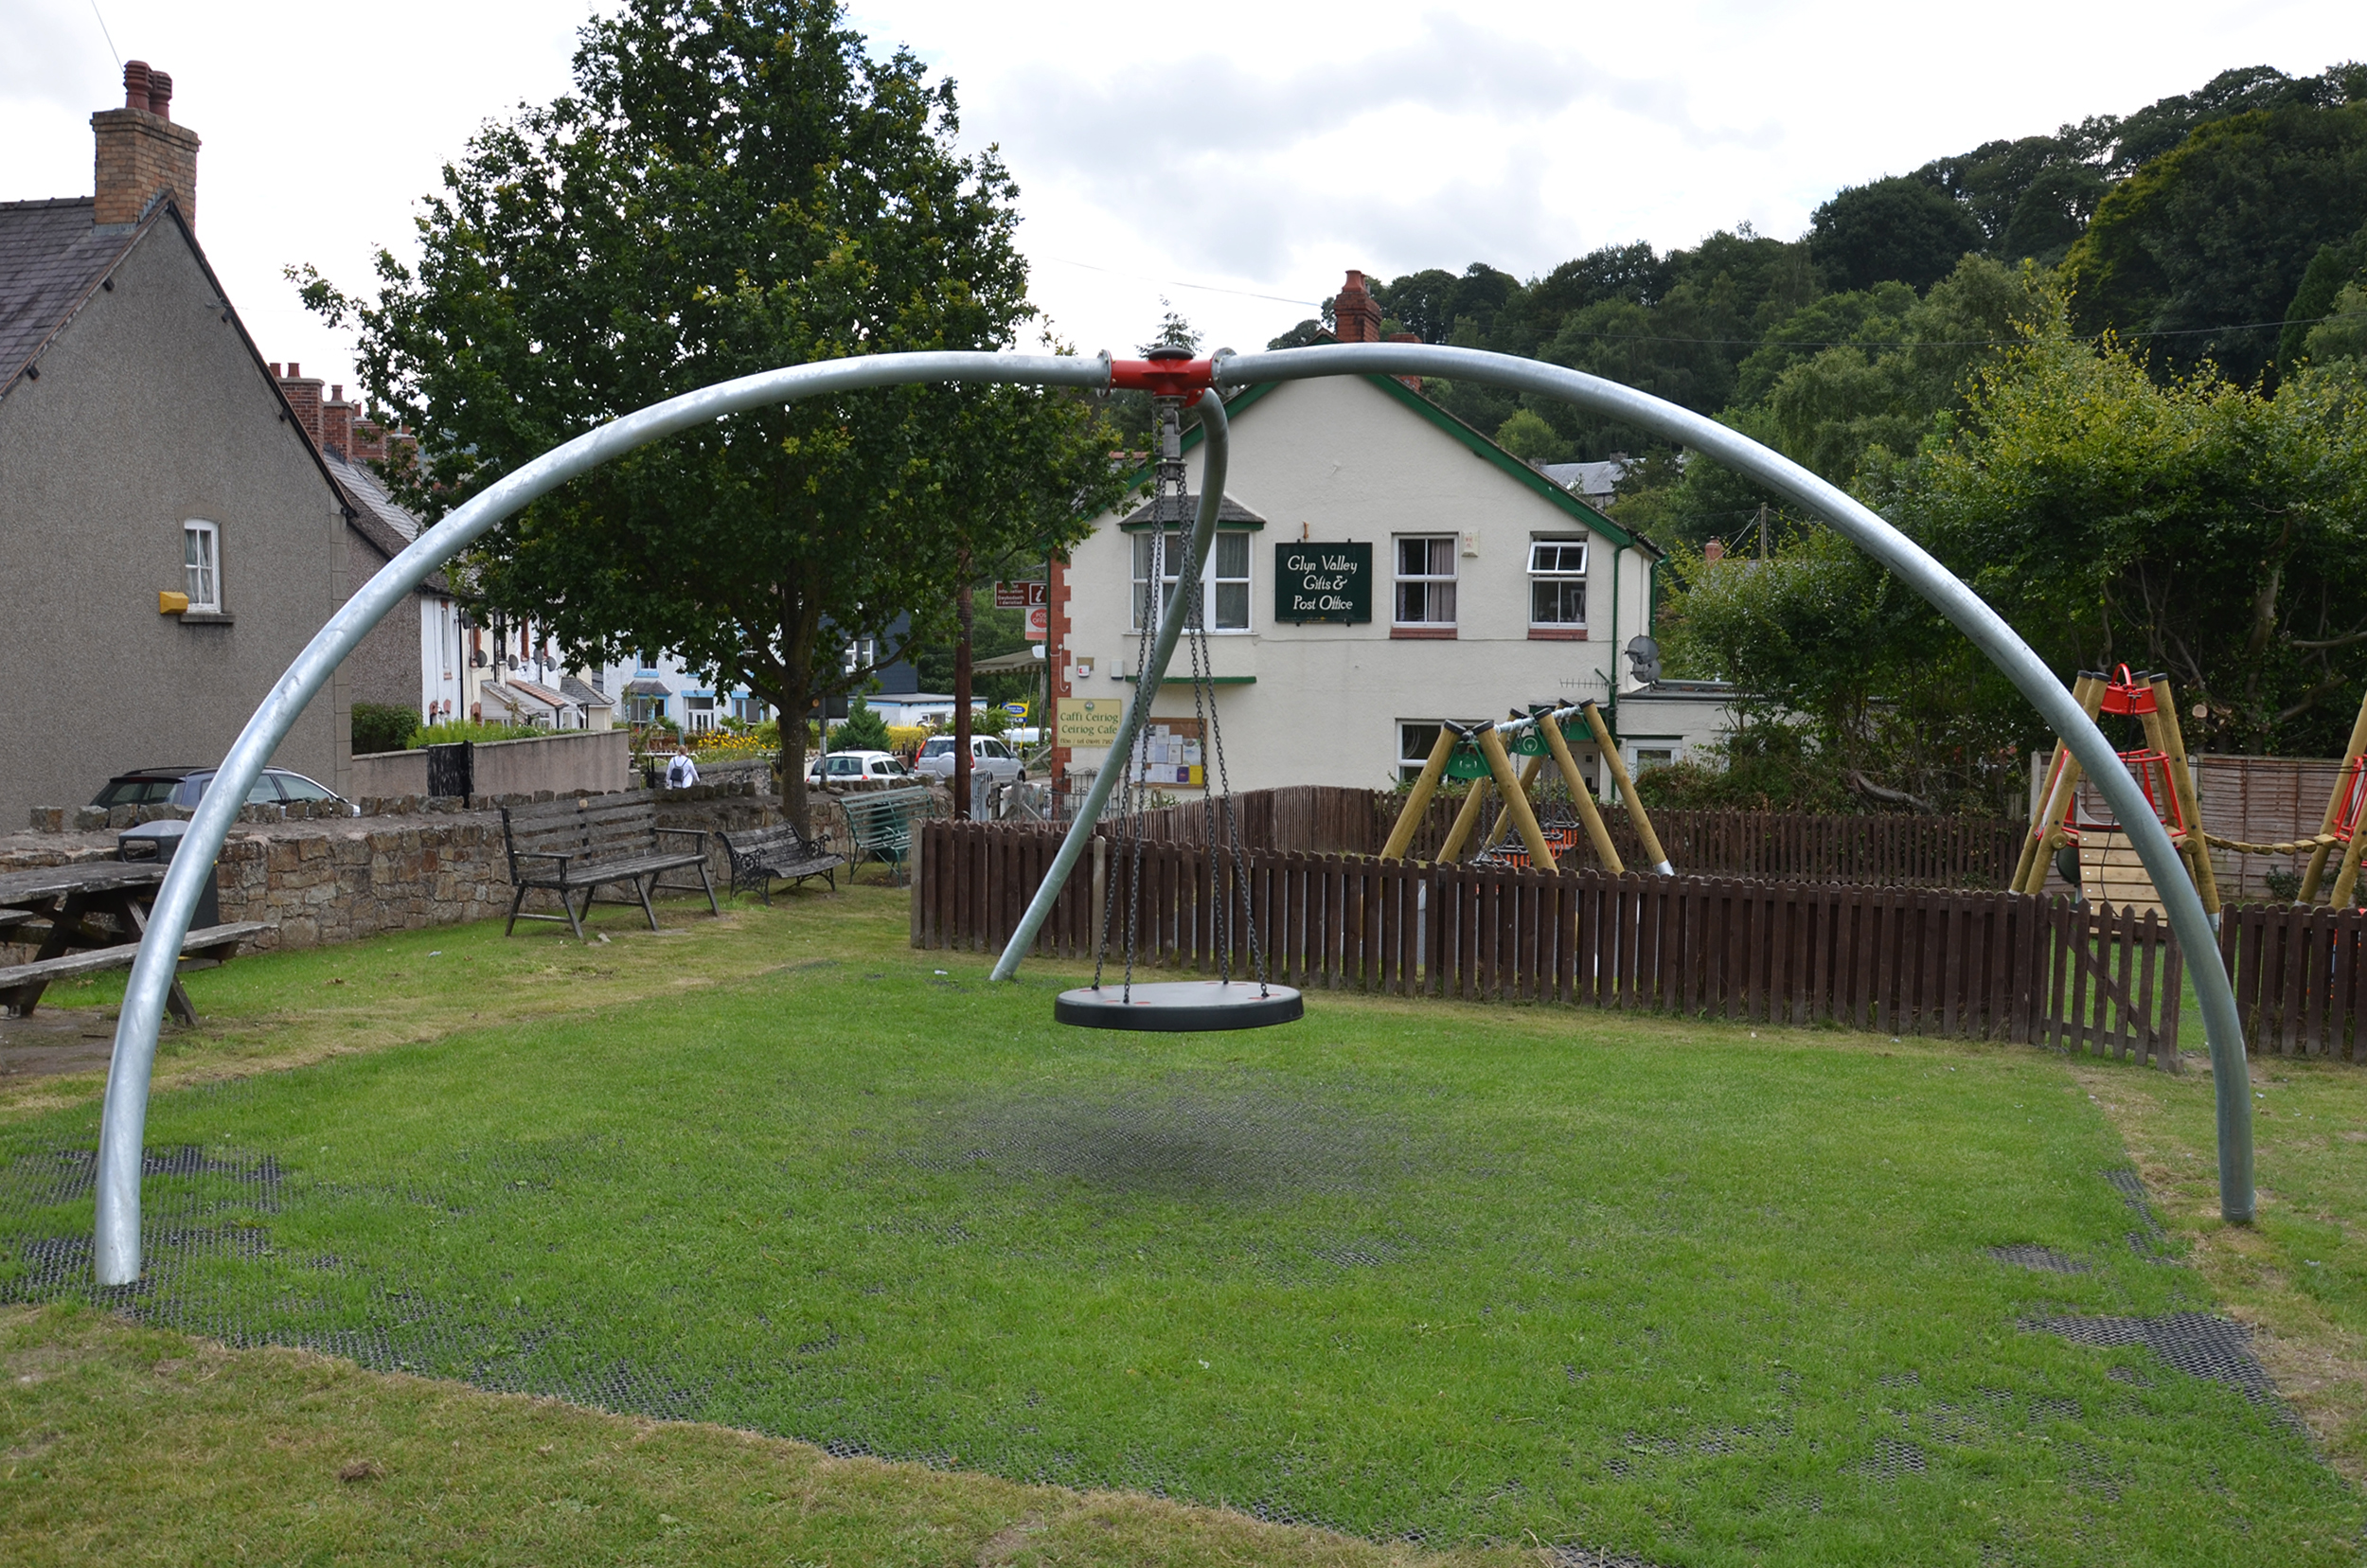 the inclusive single point swing has a flat swing hanging on chain from a central red pivot held by three curved silver legs, it is sat above grass with trees a building and some swings in the background